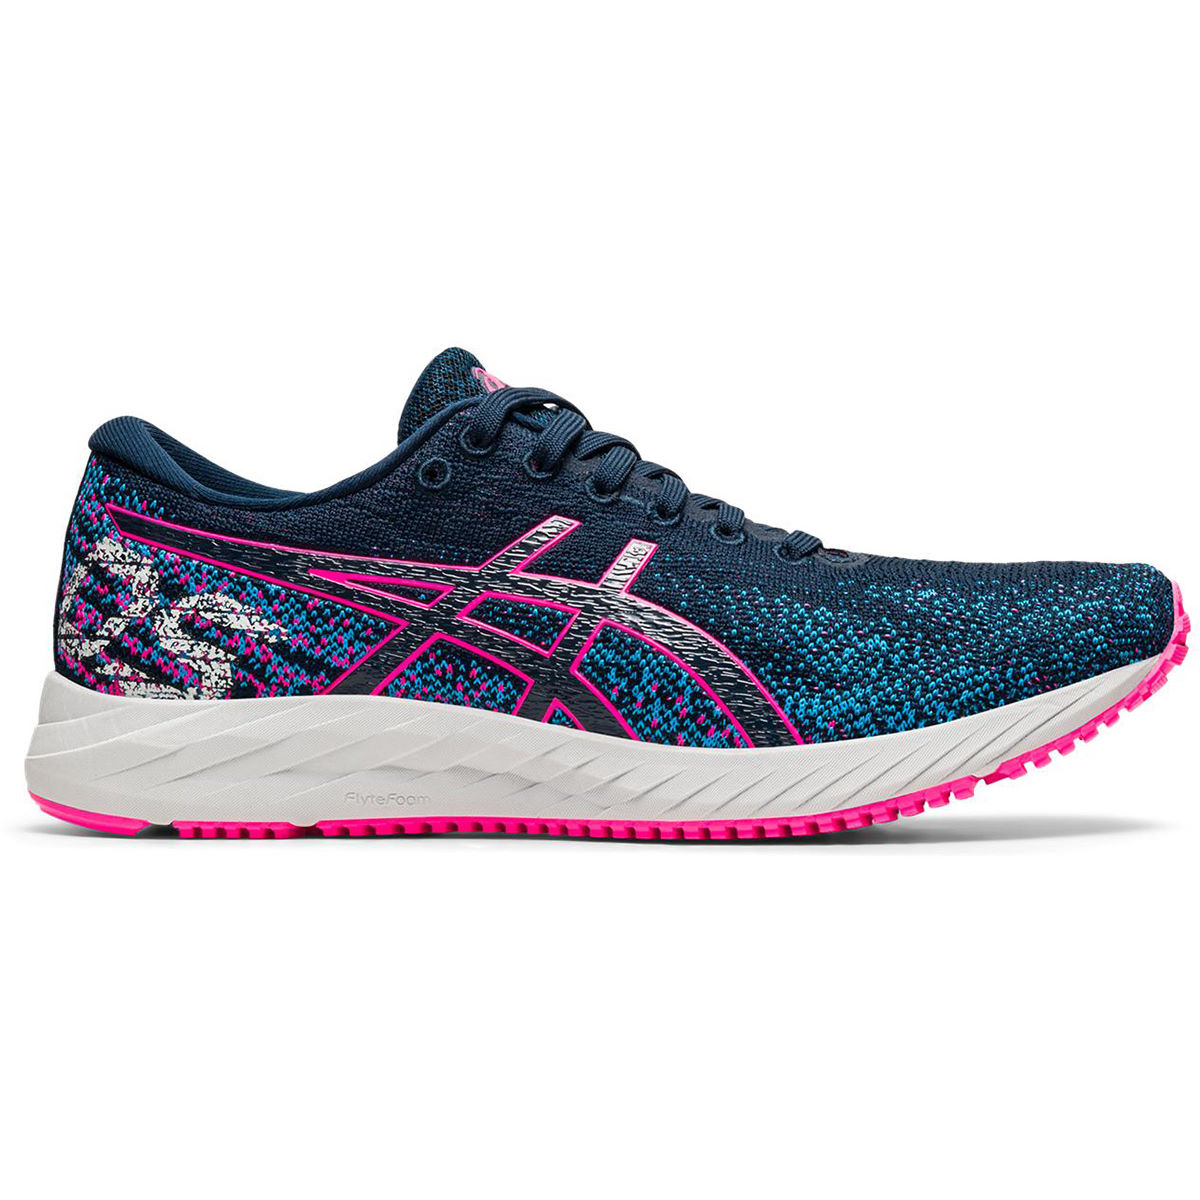 ASICS Asics Womens  GEL-DS TRAINER 26 Running Shoes   Running Shoes